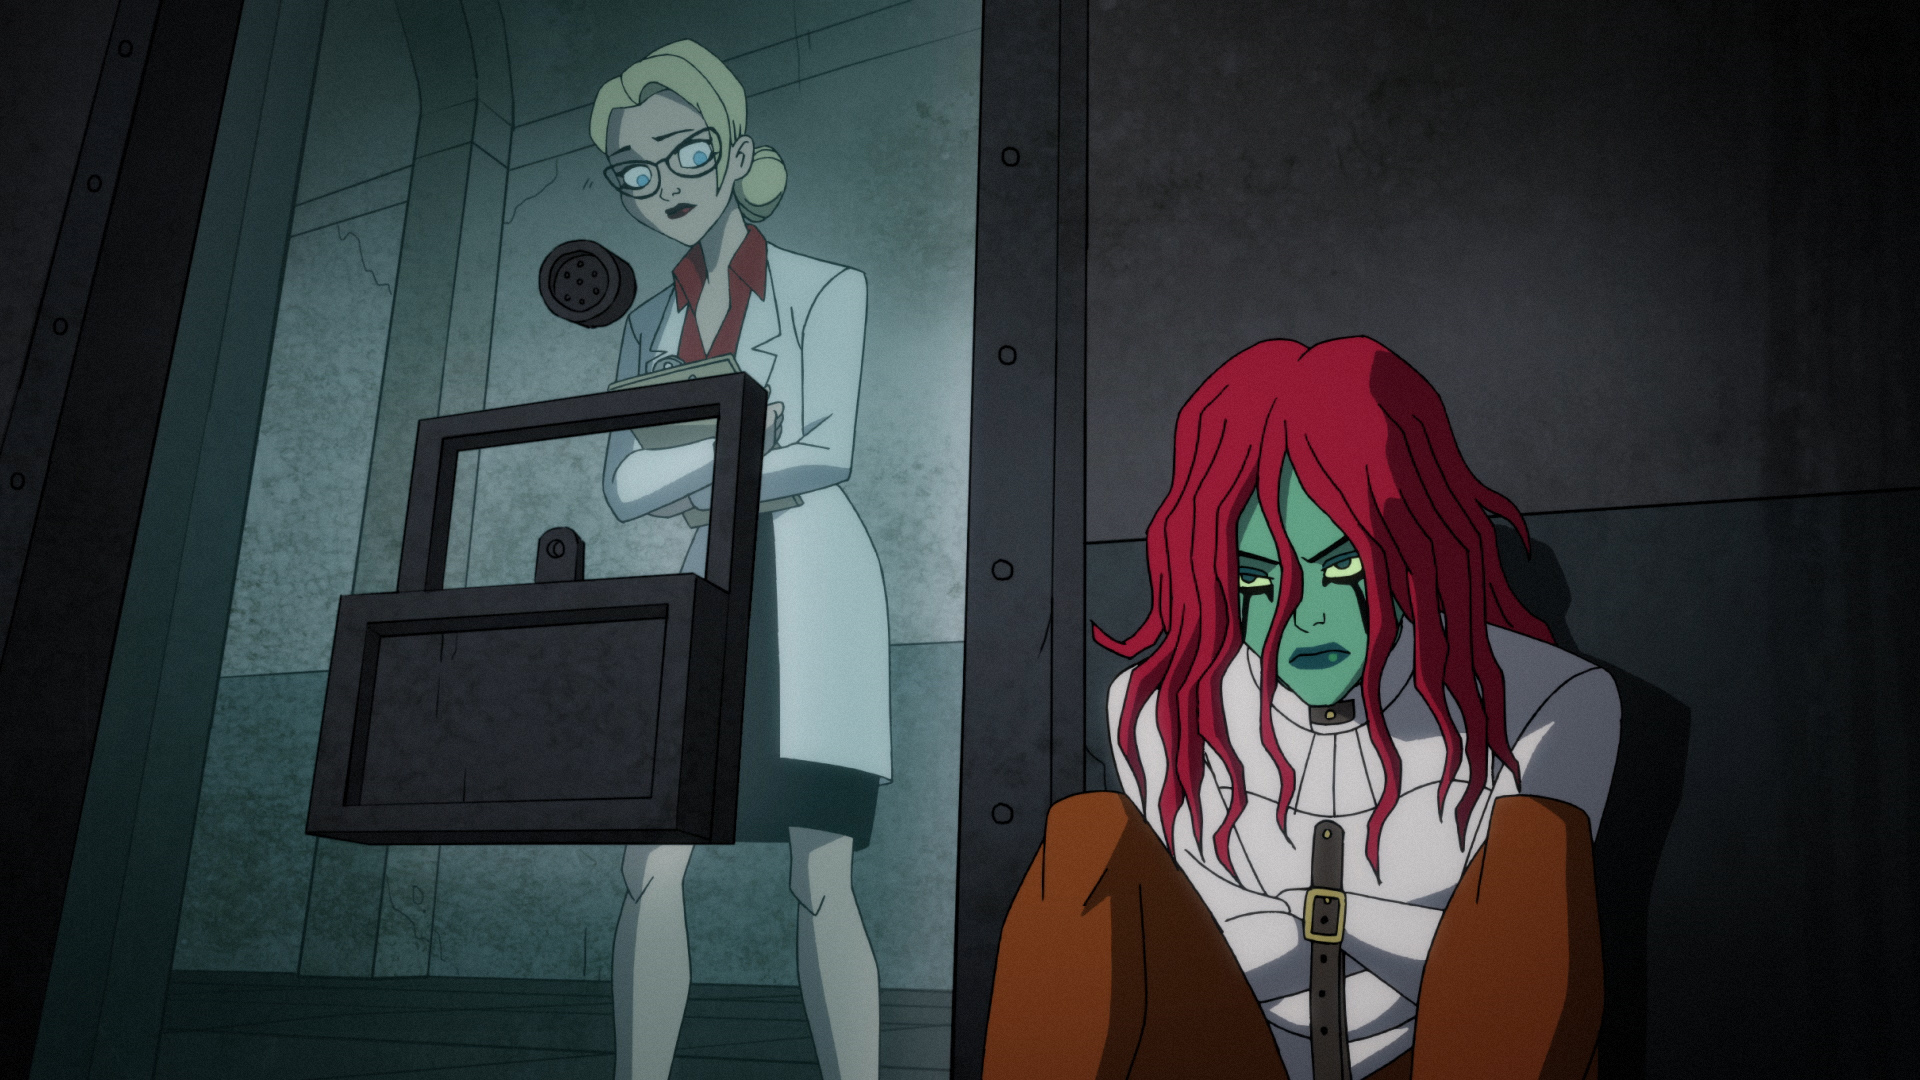 Dr. Harleen Quinzel and Poison Ivy when they first meet in Arkham Asylum.